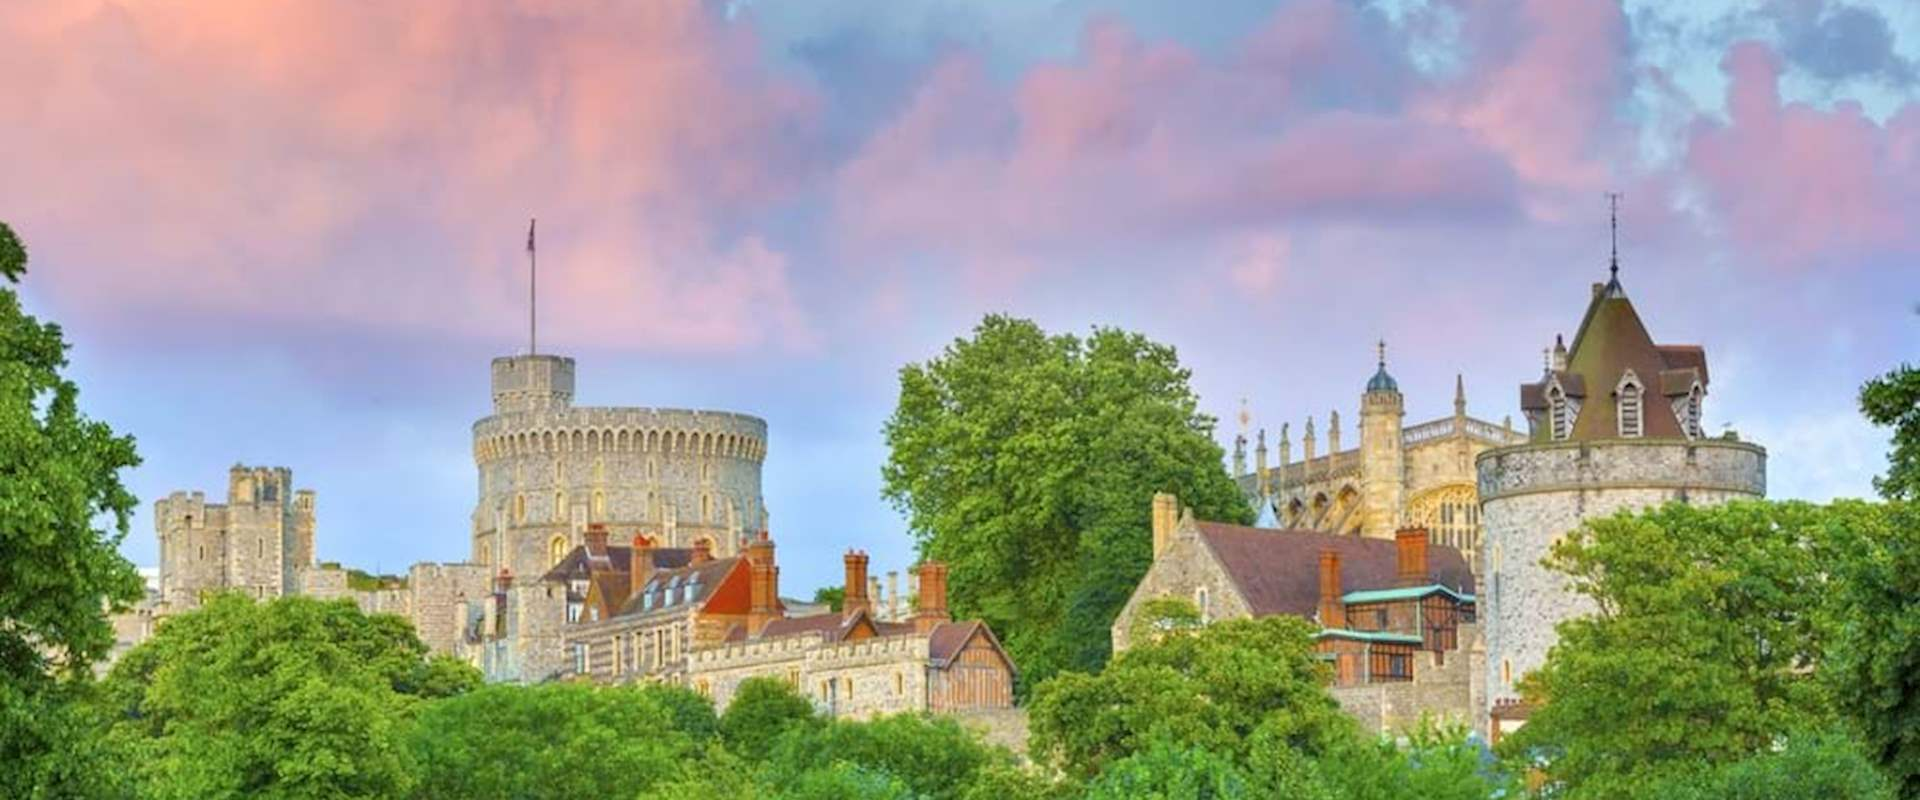 windsor castle guided tour tickets from london city. Black Bedroom Furniture Sets. Home Design Ideas